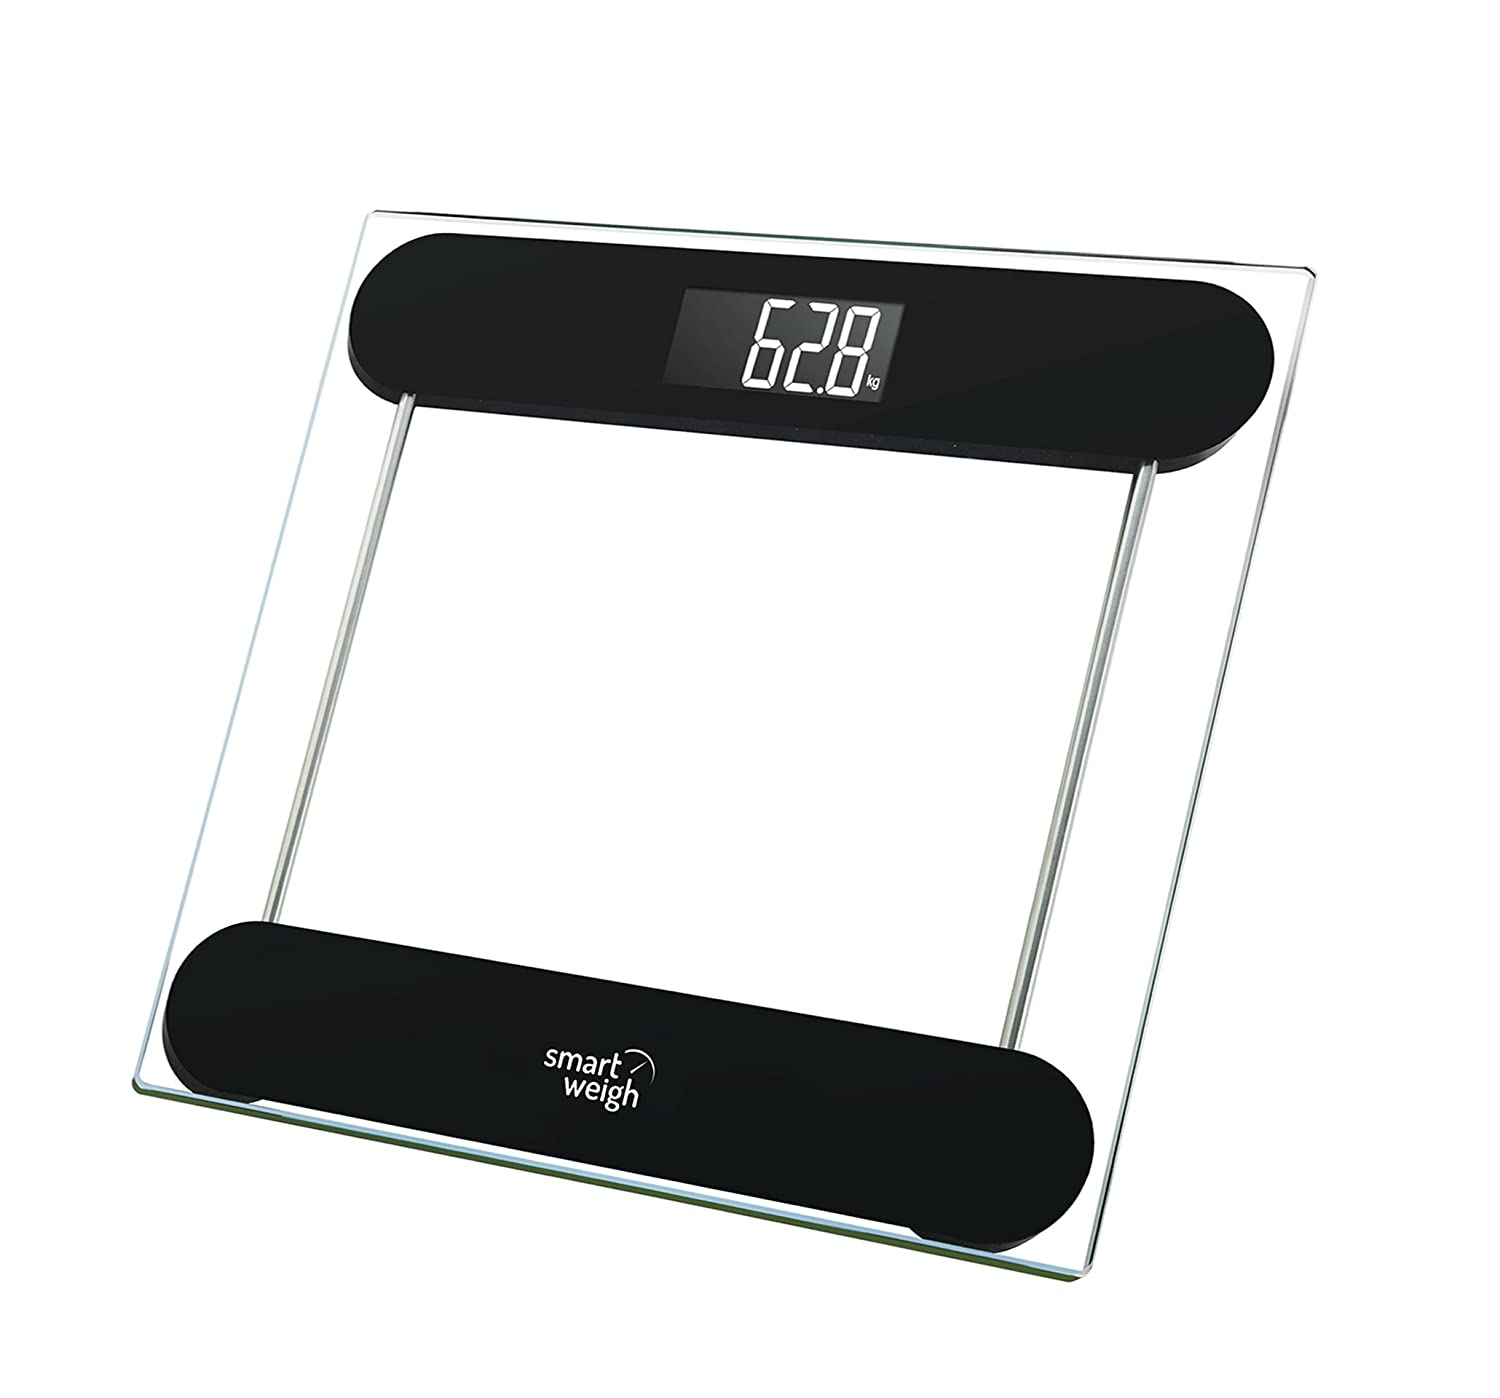 Amazon com  Smart Weigh Precision Digital Vanity   Bathroom Scale   quot Smart Step On quot  Technology  Tempered Glass Platform and Large Backlight Display  Home  amp. Amazon com  Smart Weigh Precision Digital Vanity   Bathroom Scale